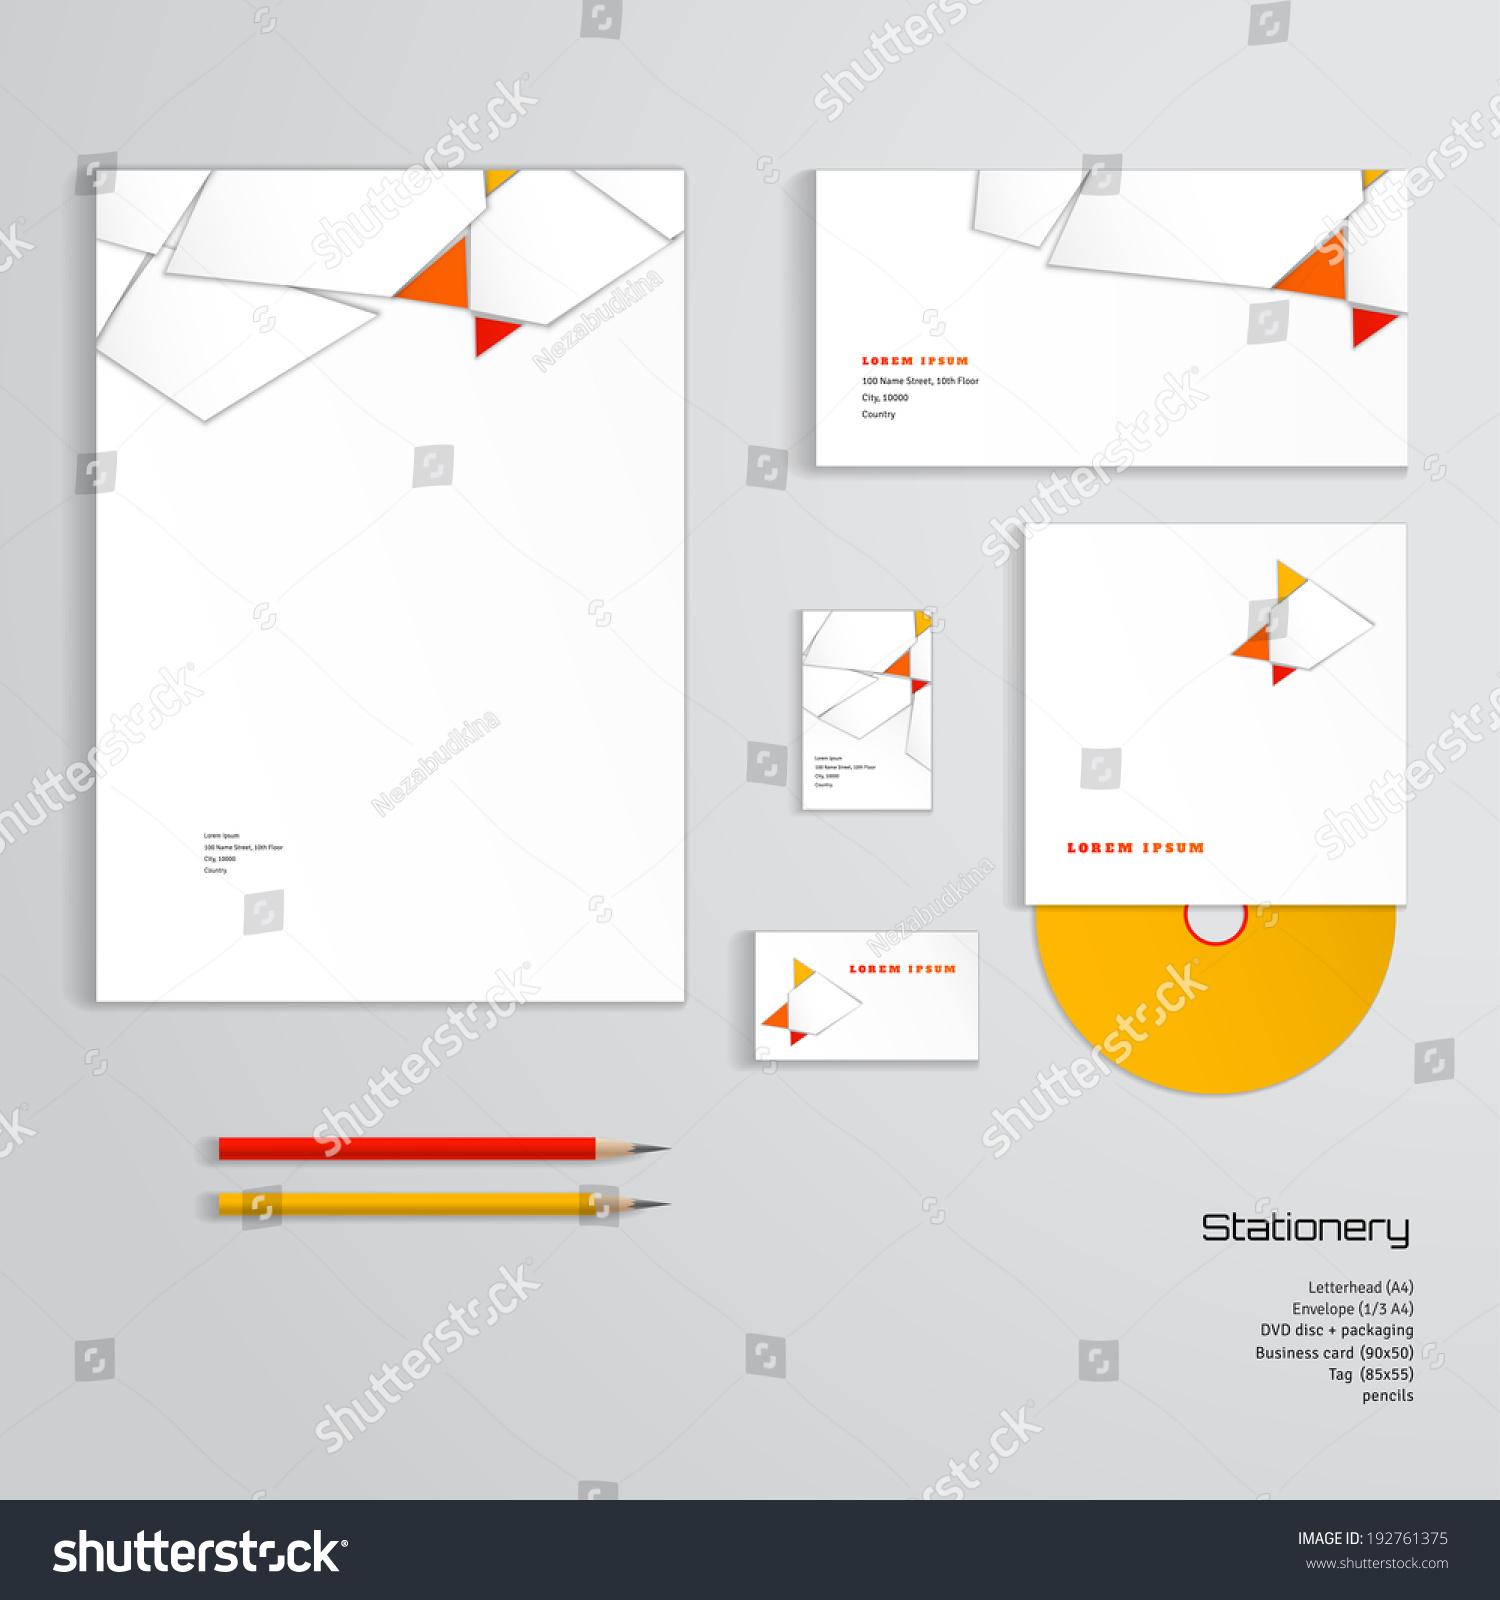 Vector identity templates letterhead envelope business stock vector vector identity templates letterhead envelope business card tag disc with packaging wajeb Choice Image